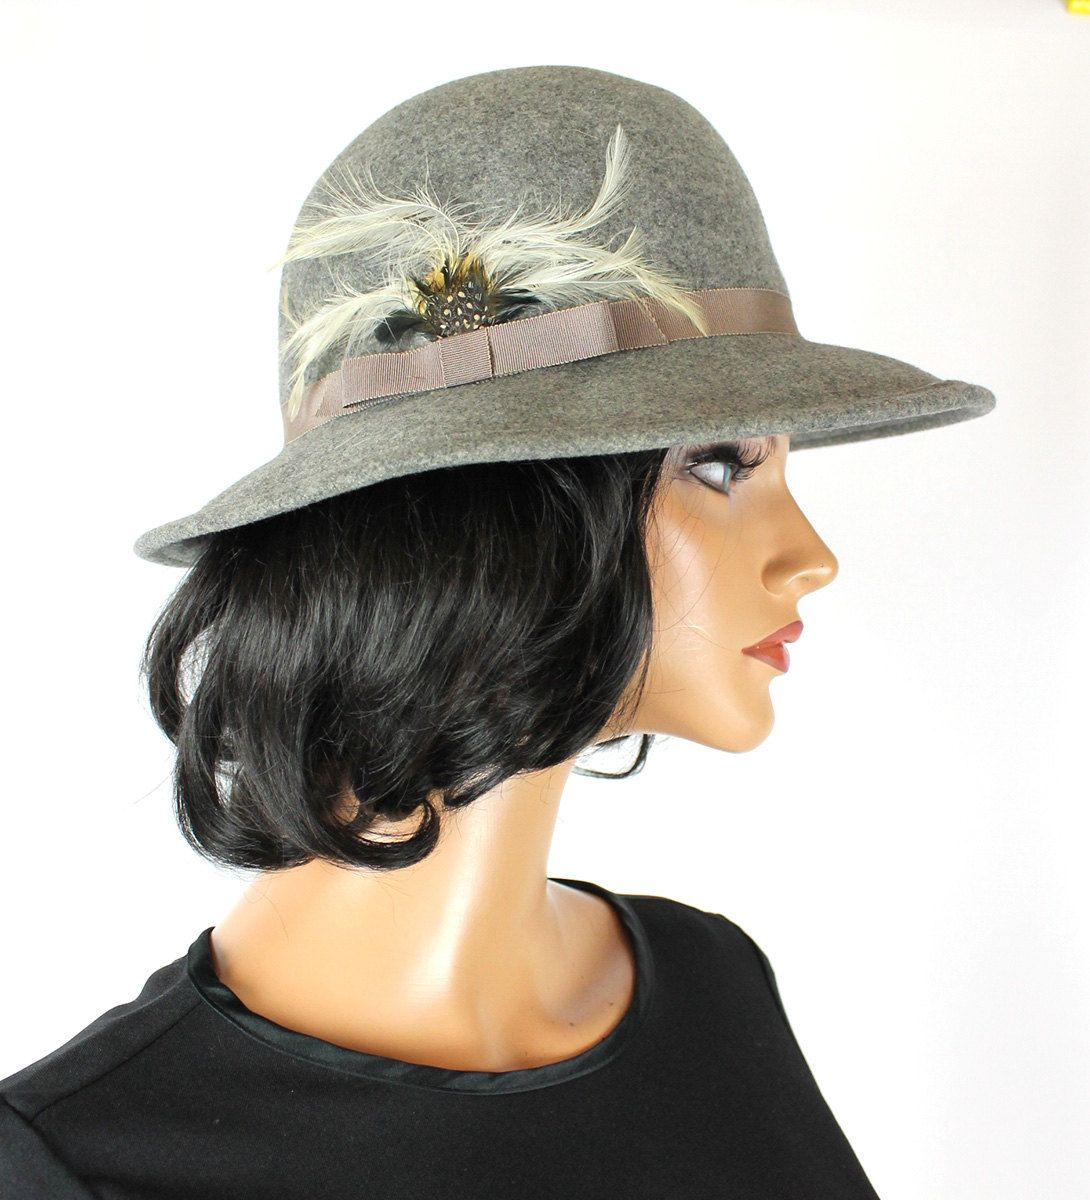 Vintage Wool Hat 7 1 8 M 70s Heather Gray Felt White Feathers Wide Brim  Floppy Free US Shipping by HepCatClothes on Etsy fd7e64d7a9a7